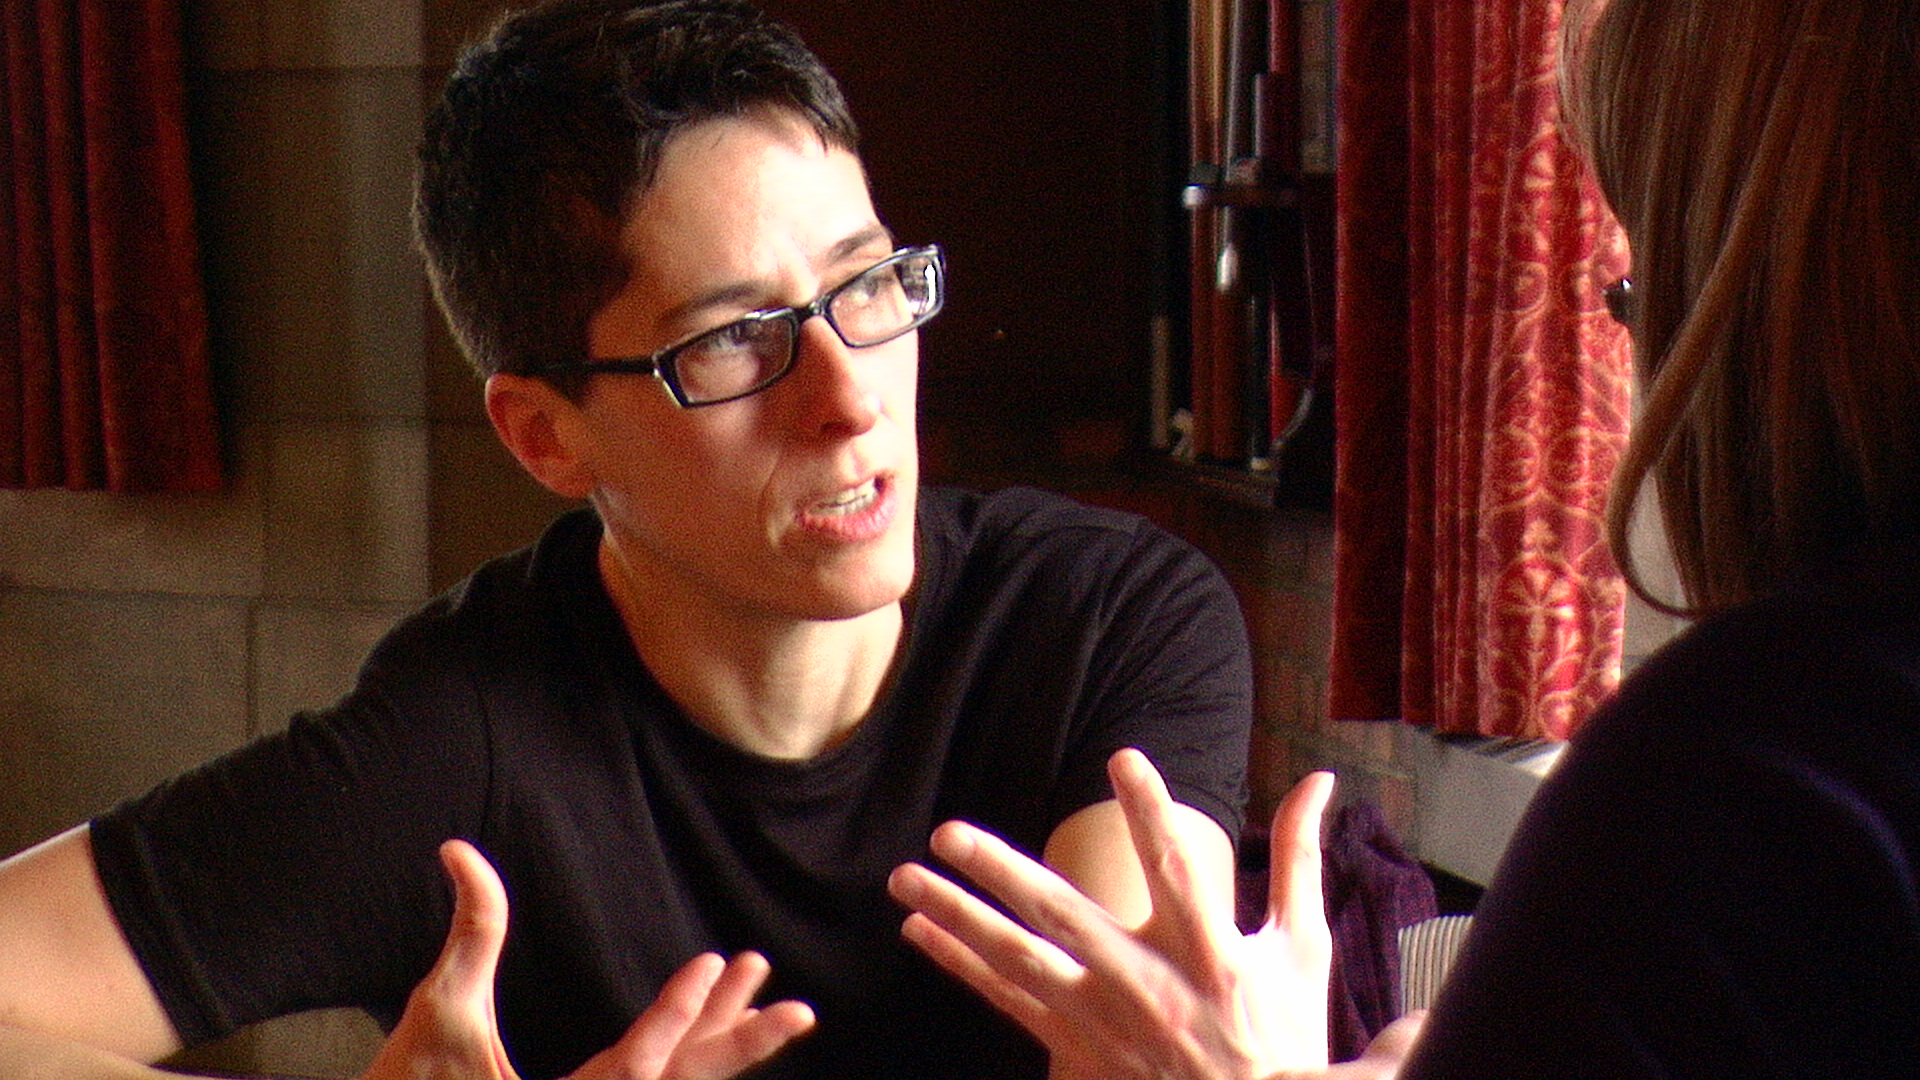 alison bechdel Fun home: a family tragicomic is a 2006 graphic memoir by the american cartoonist alison bechdel, author of the comic strip dykes to watch out forit chronicles the author's childhood and youth in rural pennsylvania, united states, focusing on her complex relationship with her father.